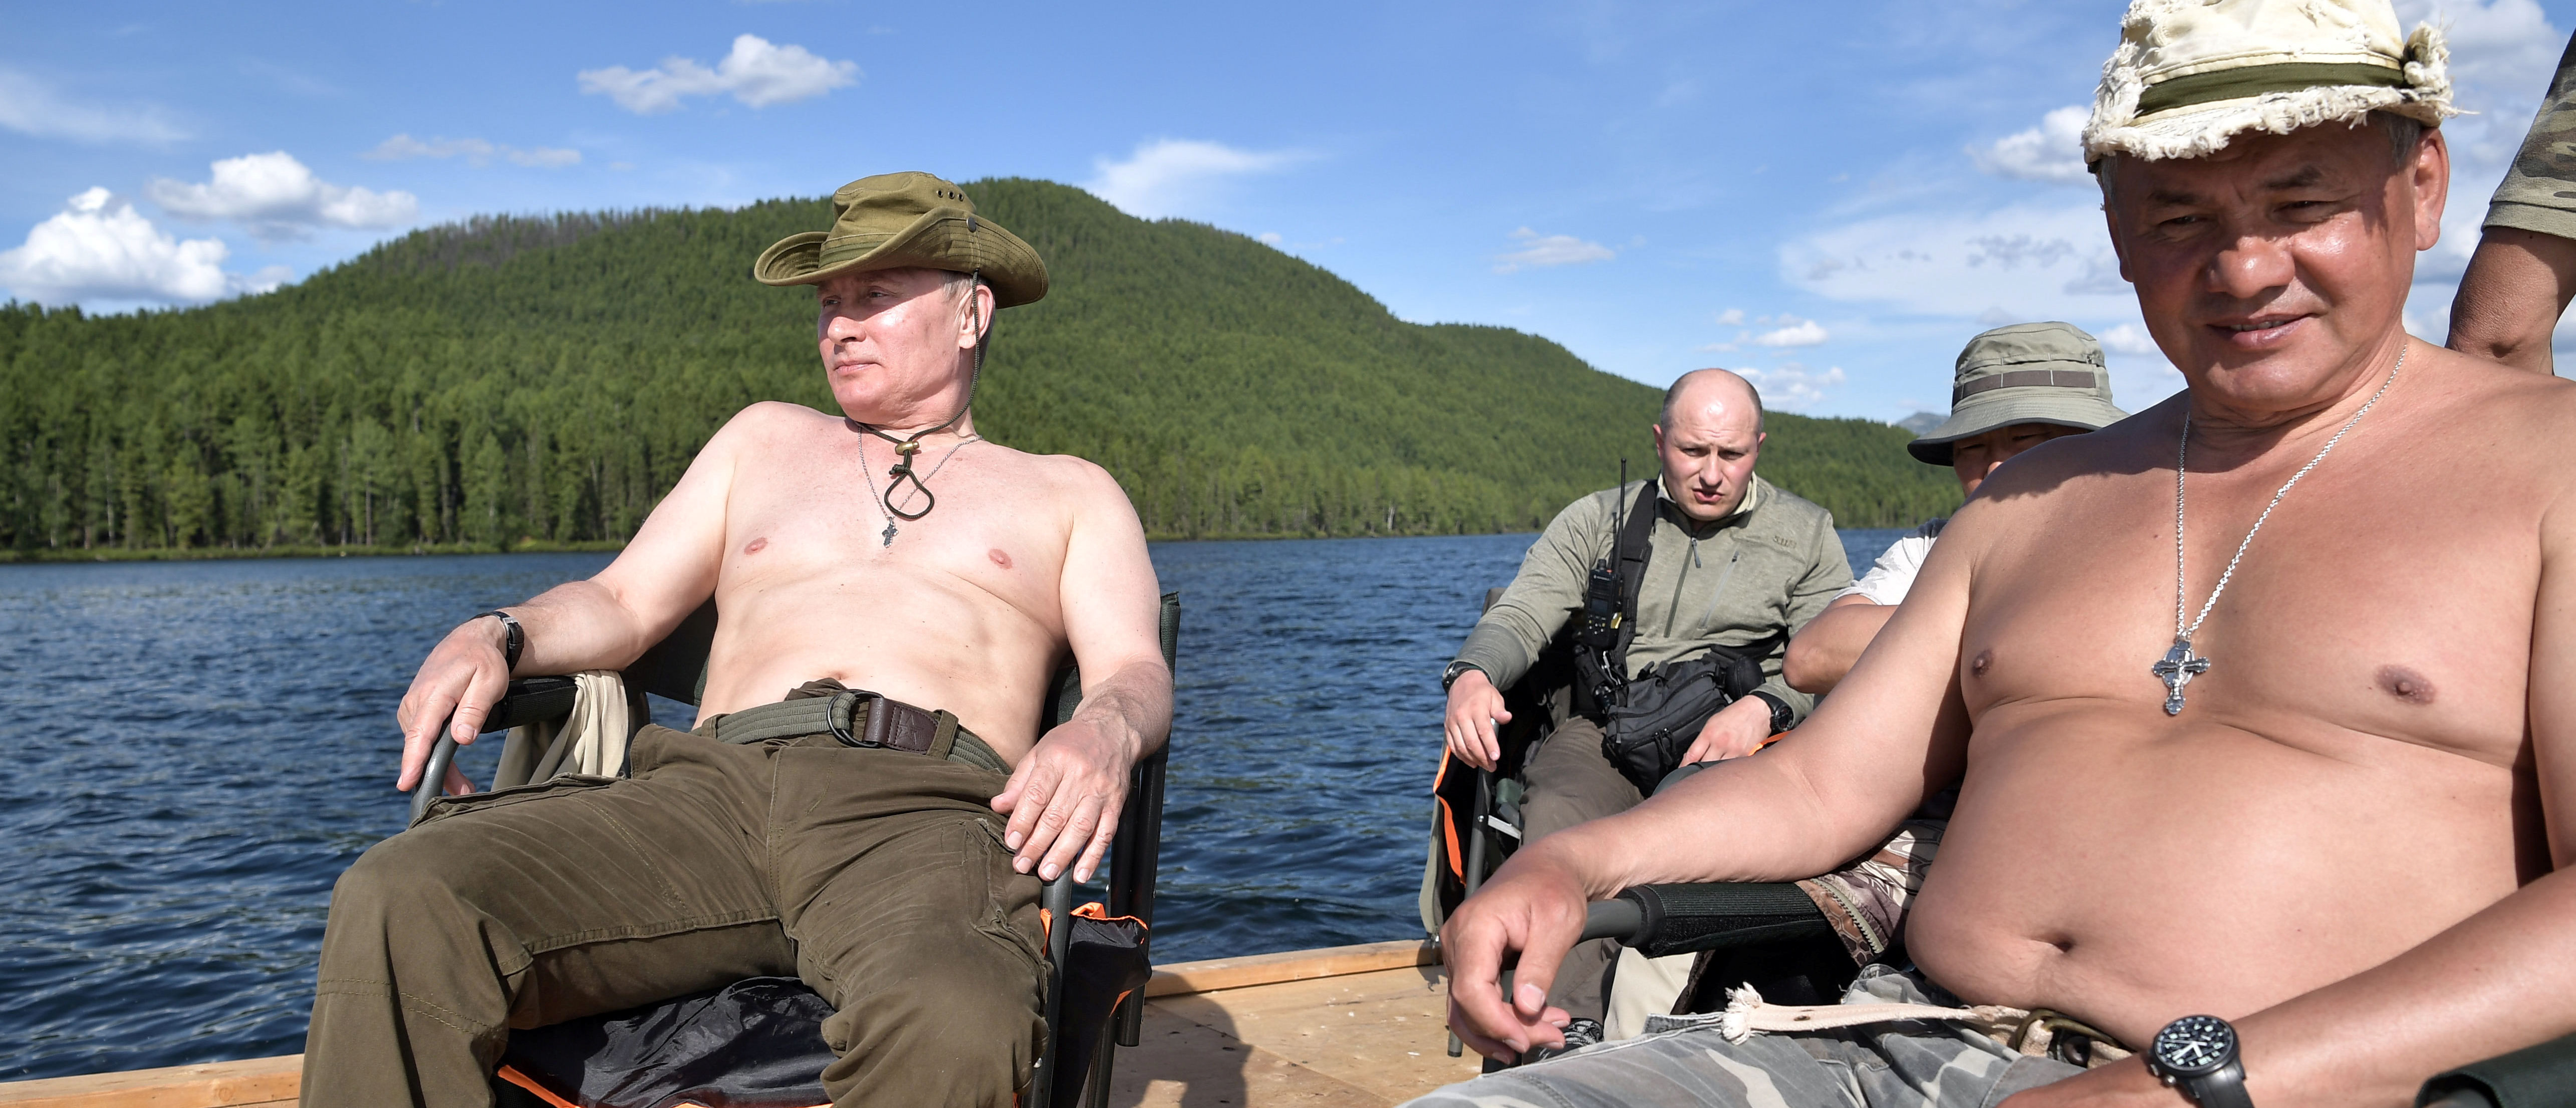 Reuters/ Russian President Vladimir Putin and Defence Minister Sergei Shoigu rest during the hunting and fishing trip which took place on August 1-3 in the republic of Tyva in southern Siberia, Russia, in this photo released by the Kremlin on August 5, 2017. Sputnik/Alexei Nikolsky/Kremlin via REUTERS ATTENTION EDITORS - THIS IMAGE WAS PROVIDED BY A THIRD PARTY. - RTS1AILB